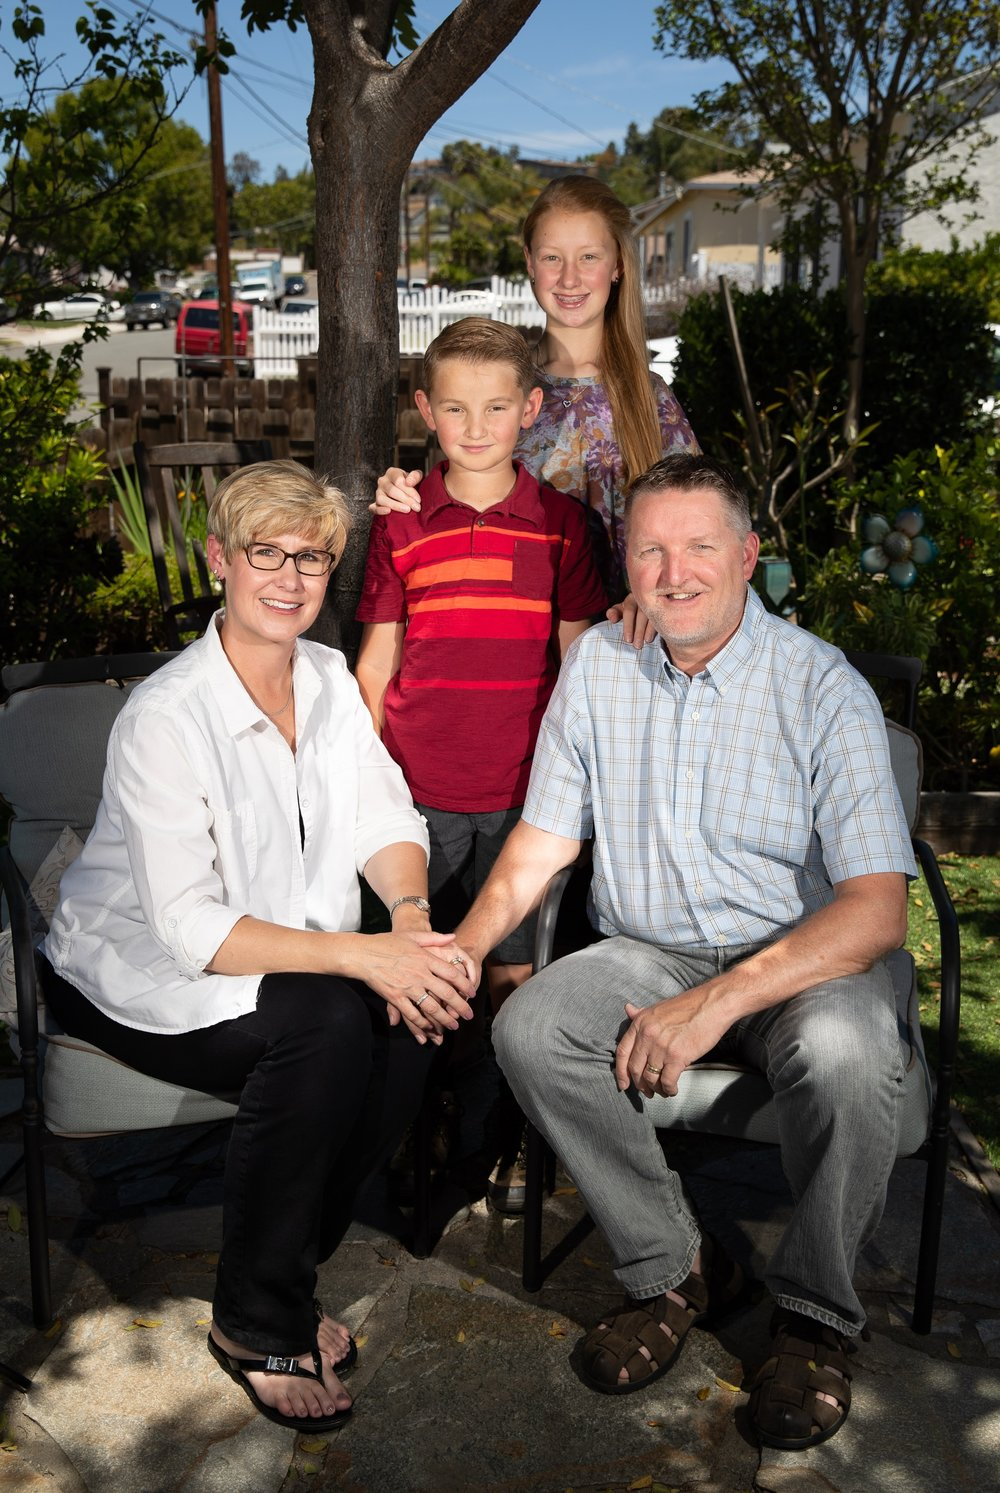 The Moehlings know that fostering can be tough, but it's also one of the the most rewarding things they've done as a family.